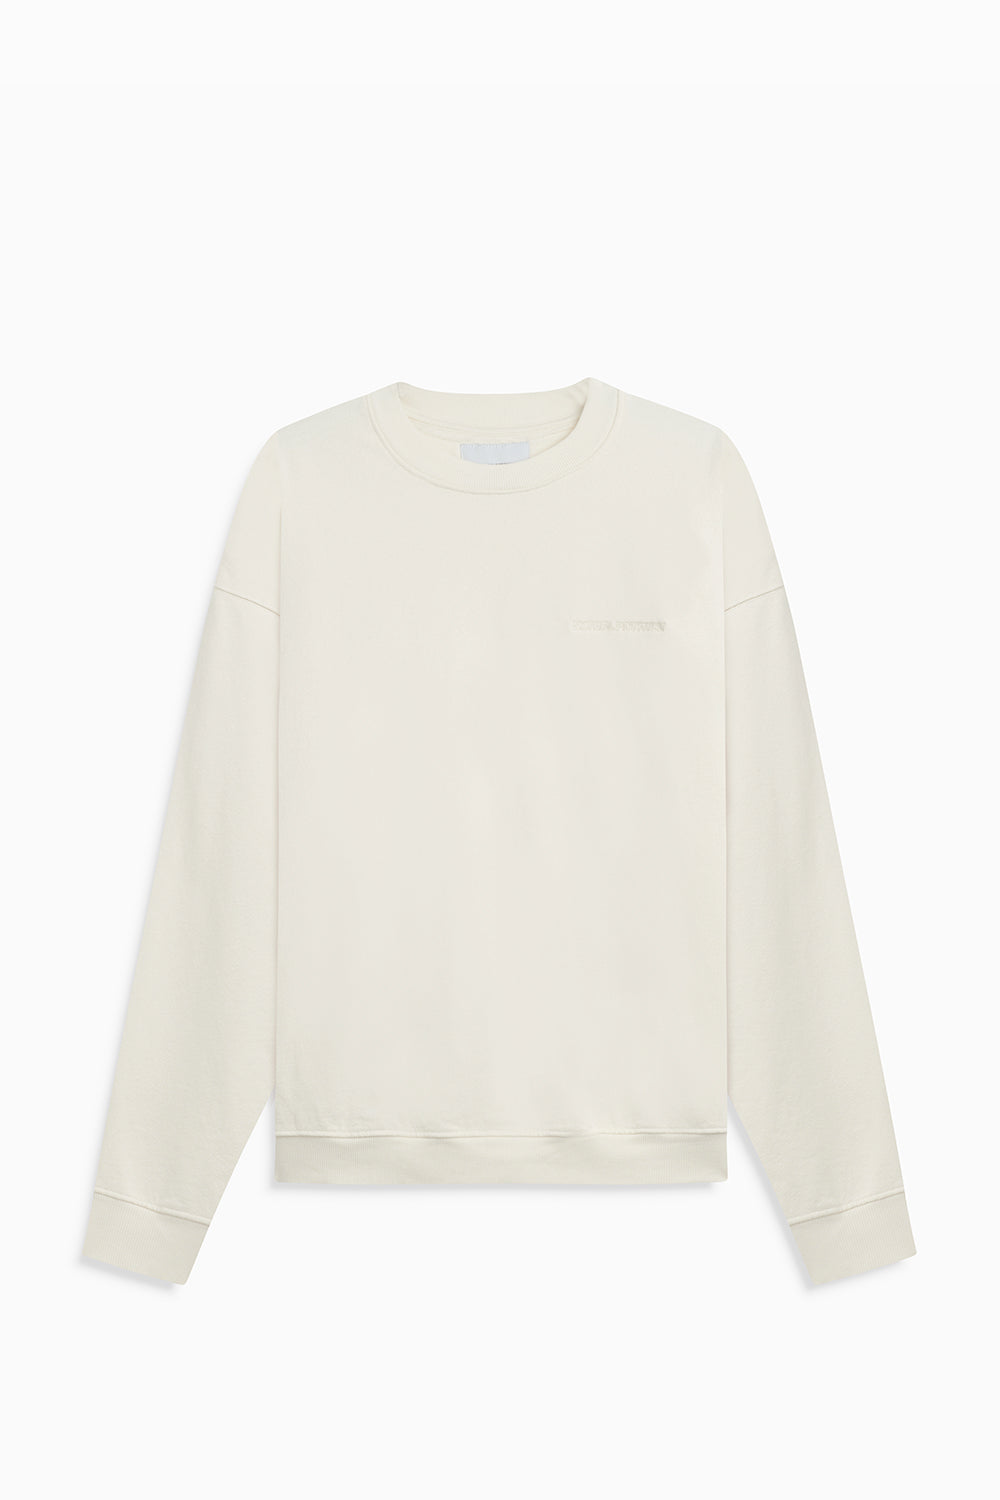 pullover crew neck sweatshirt / natural